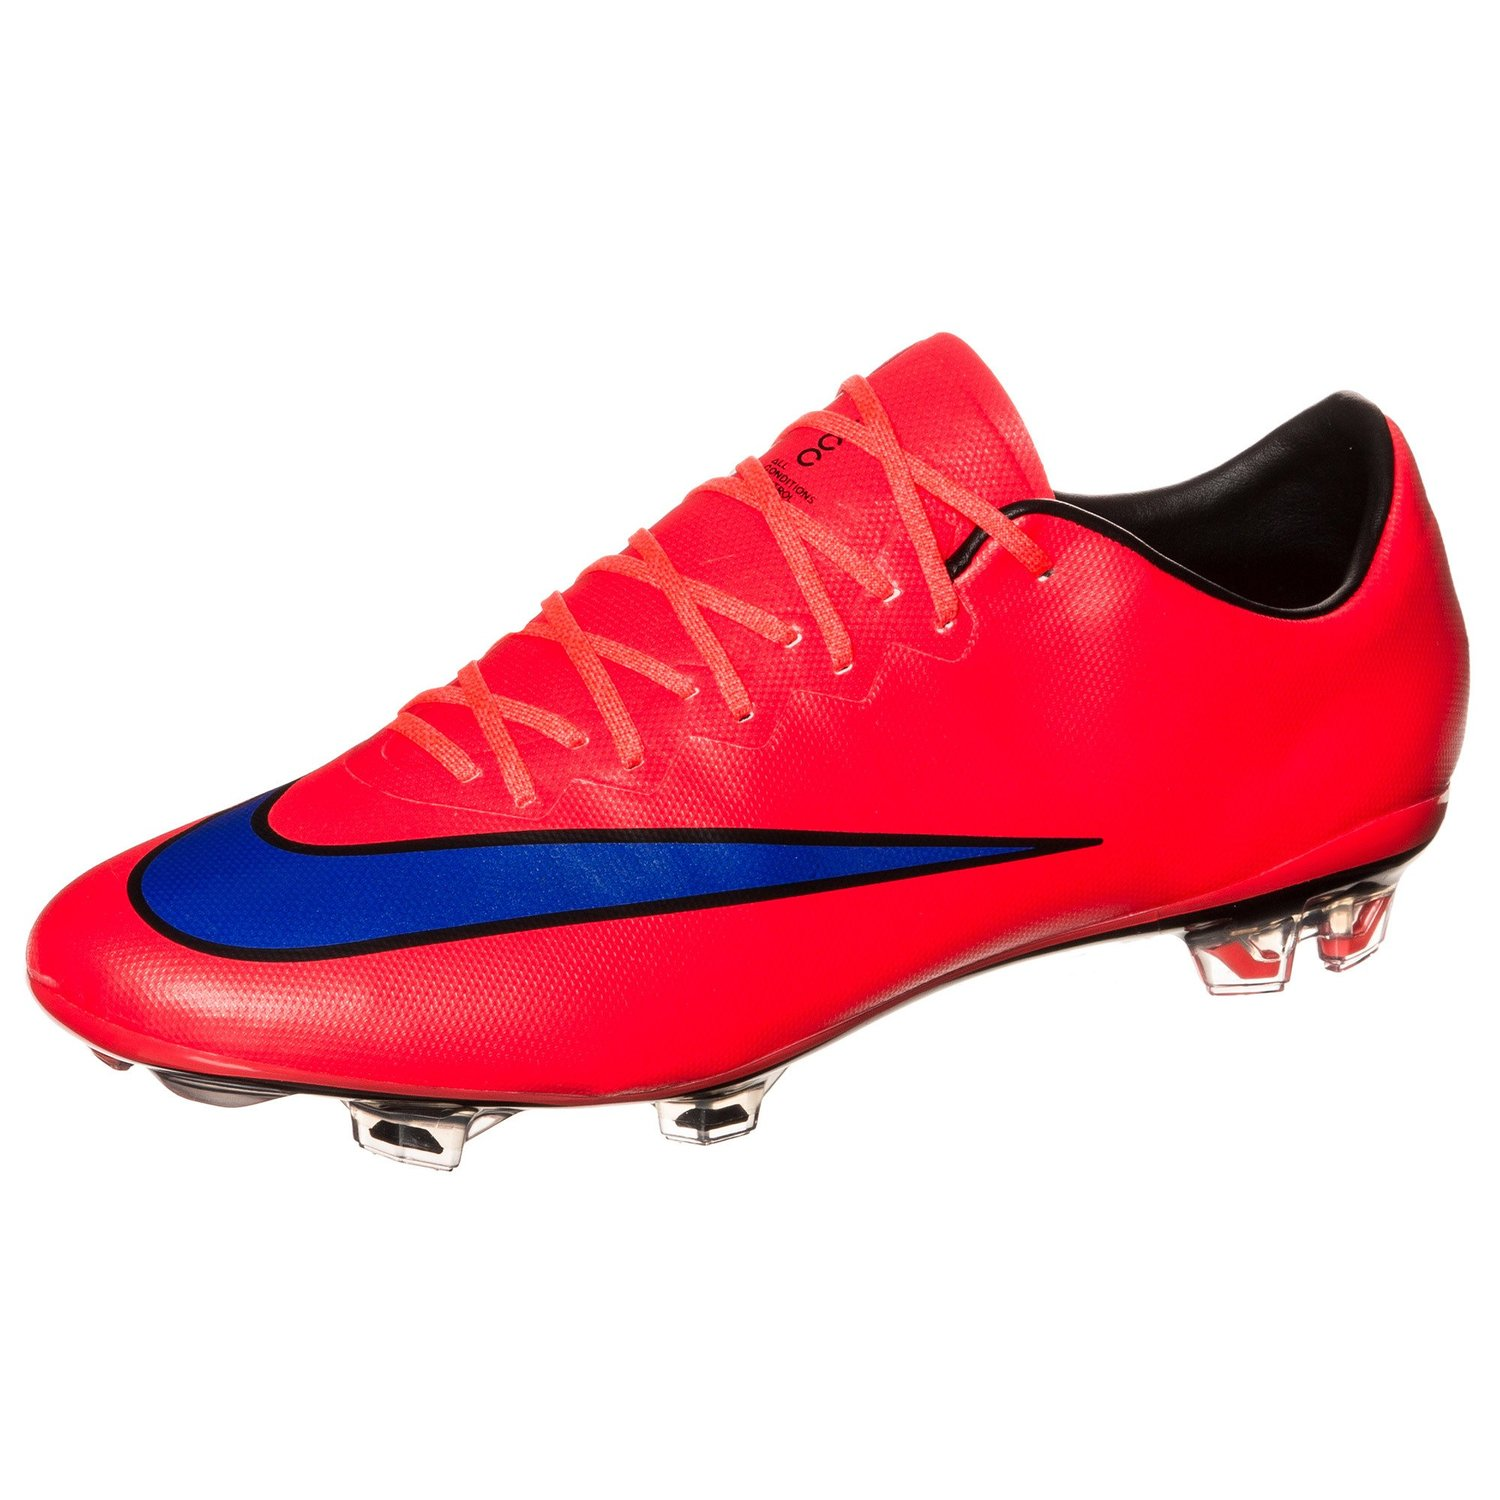 3ae5bd3a866 Buy Nike Mens Mercurial Vapor X FG - (Bright Crimson Persian Violet ...